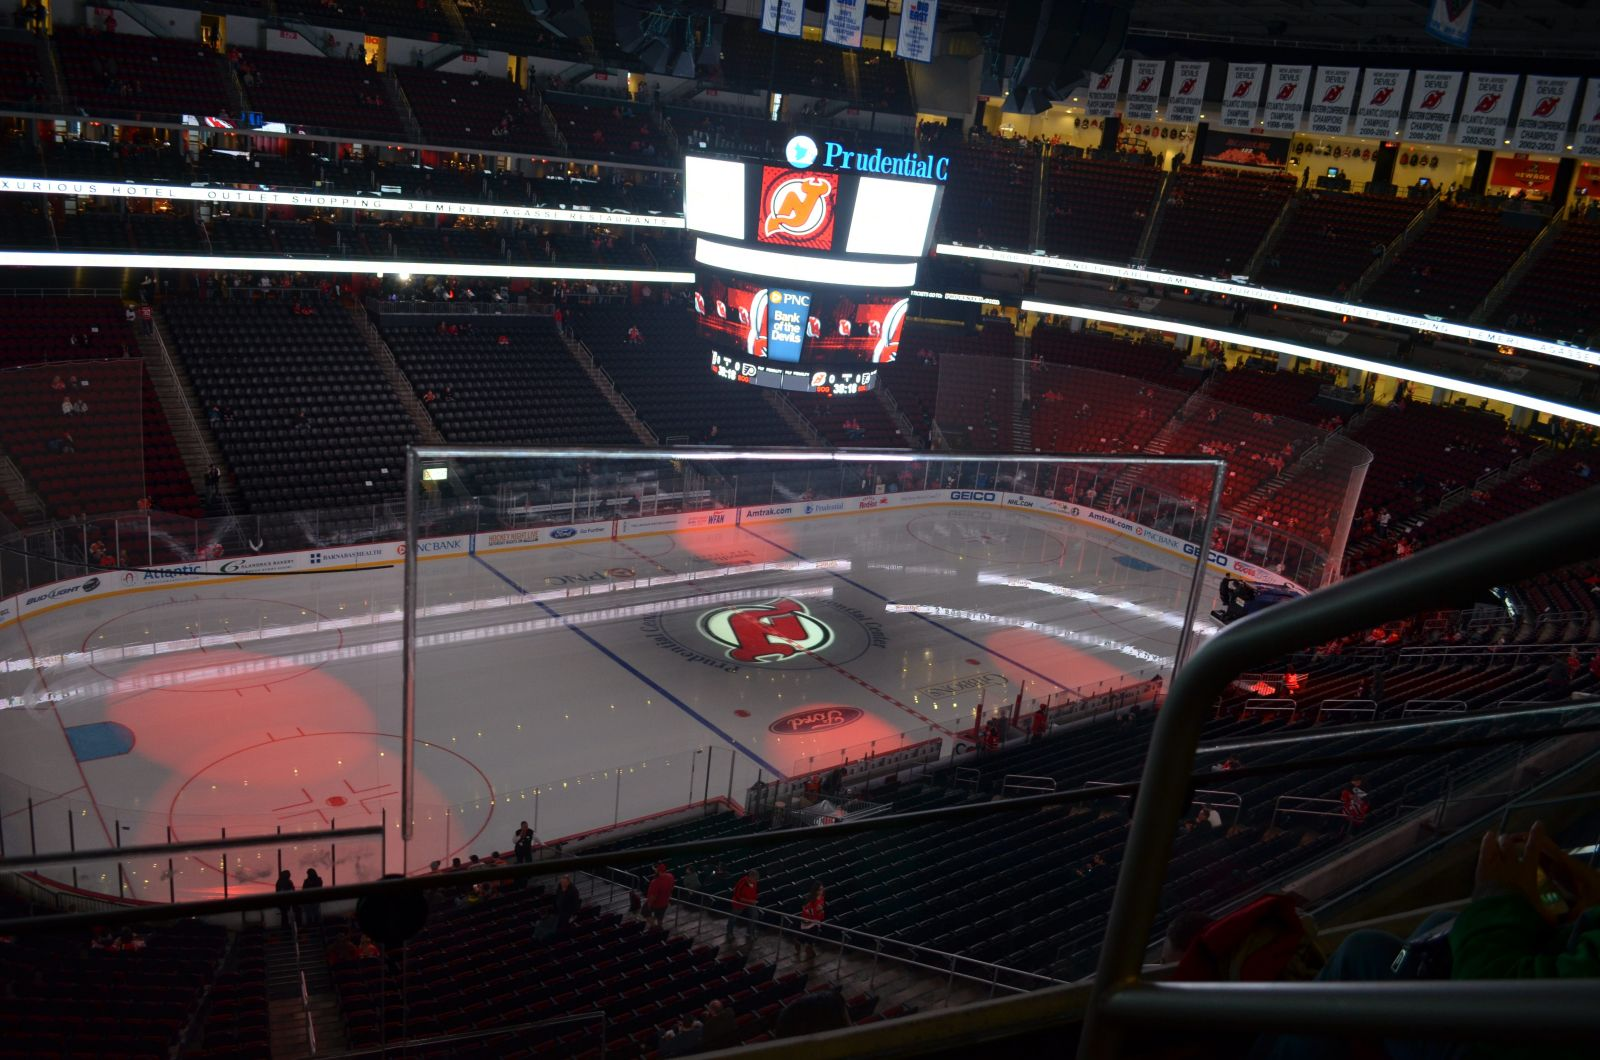 New Jersey Devils Seat View for Prudential Center Section 108, Row 2, Seat 1